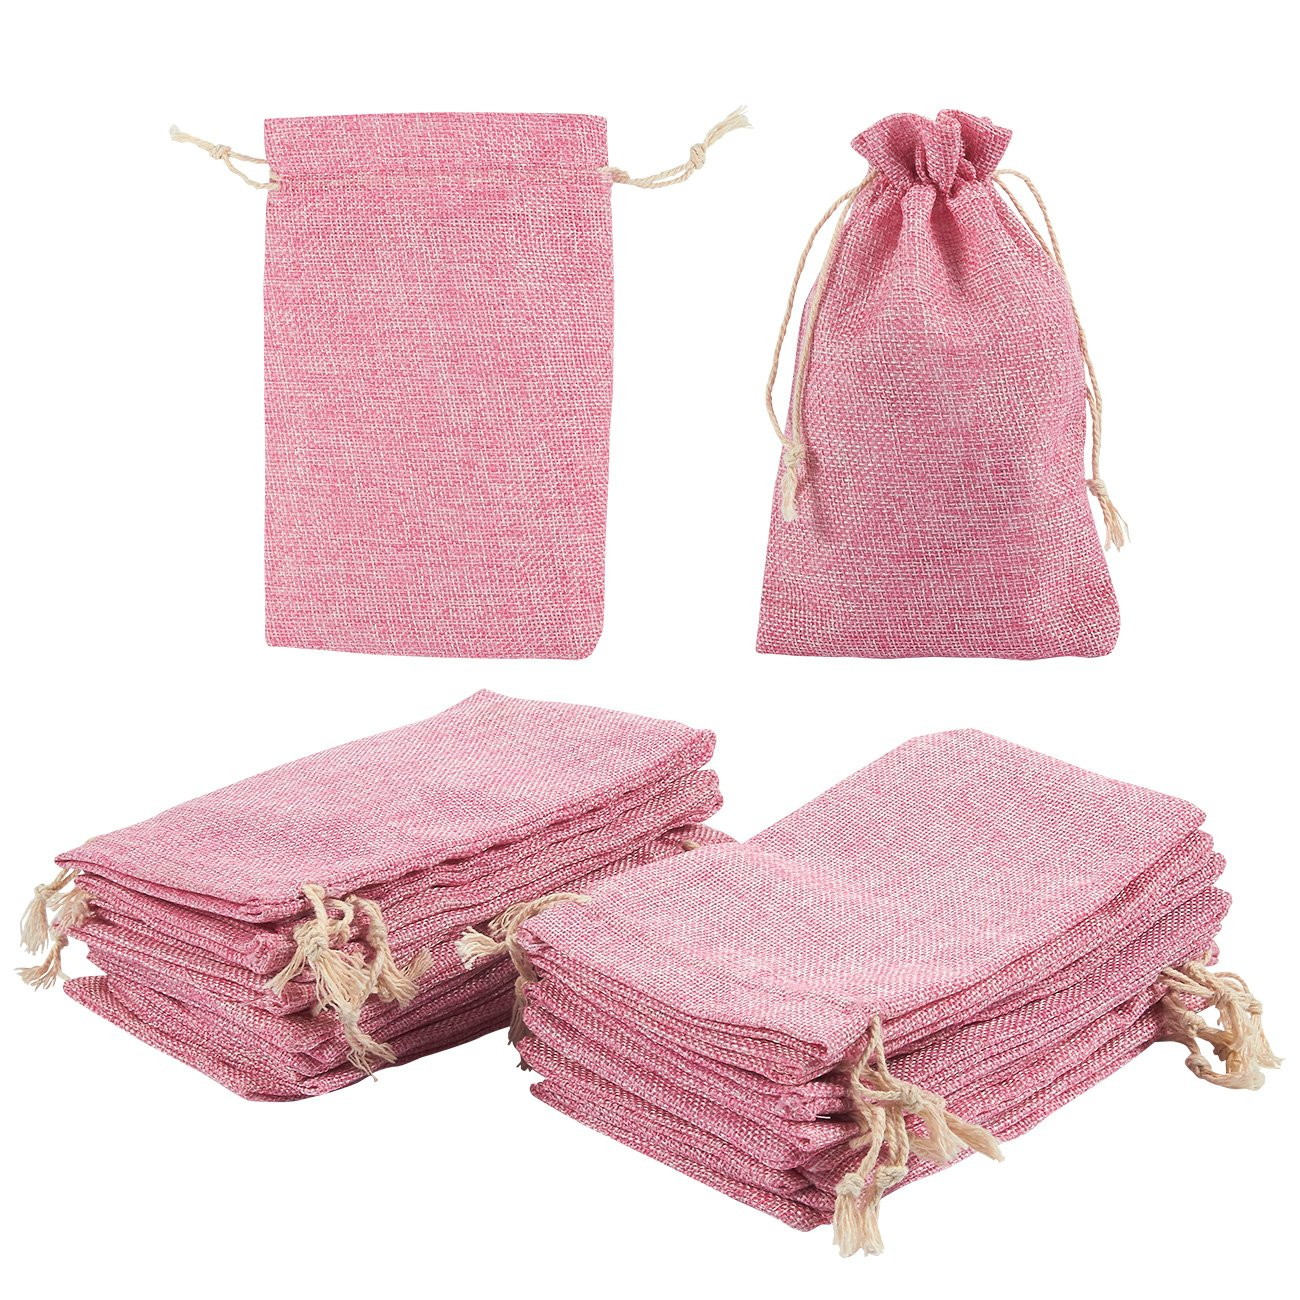 Amazon.com: Jewelry Pouch Drawstring Bags – 24 Piece Burlap Gift ...